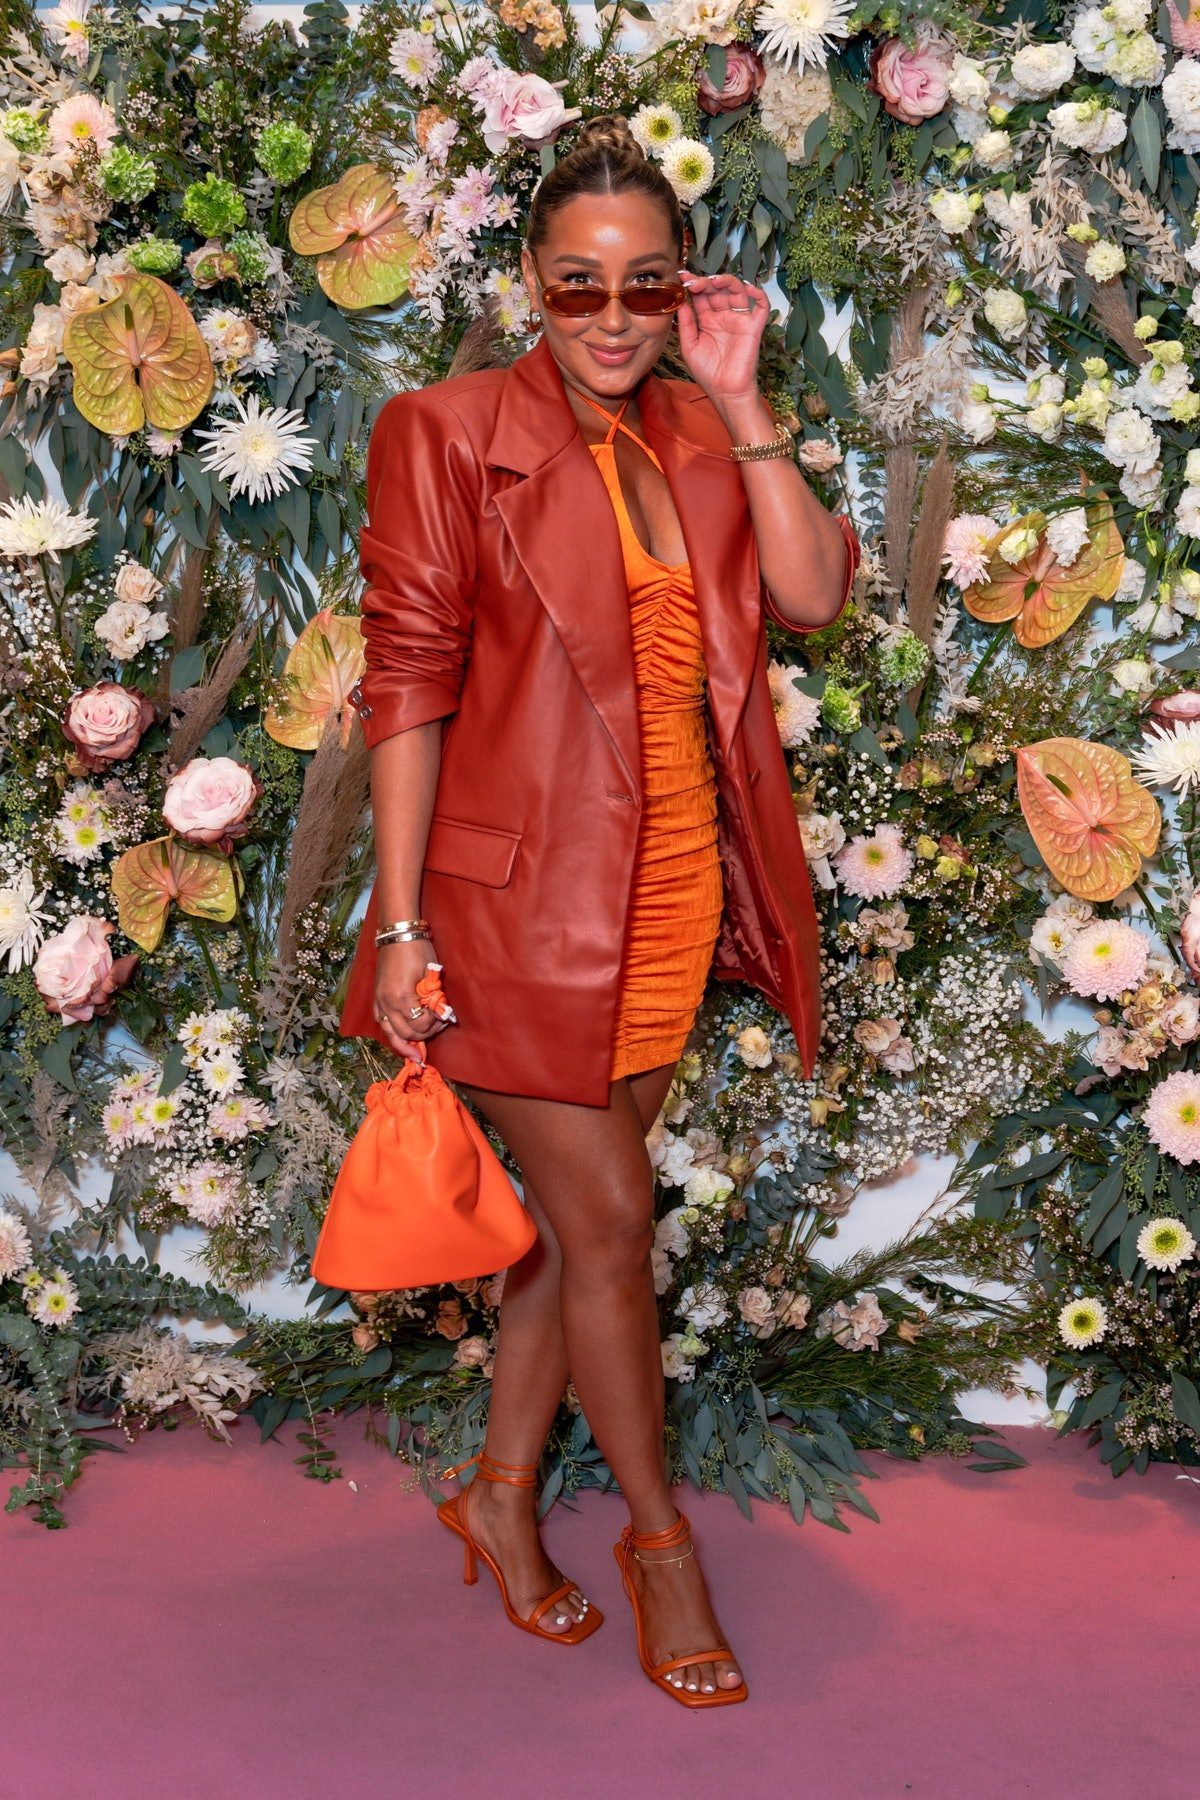 Adrienne Bailon attends the Revolve Gallery at Hudson Yards on September 09, 2021 in New York City.